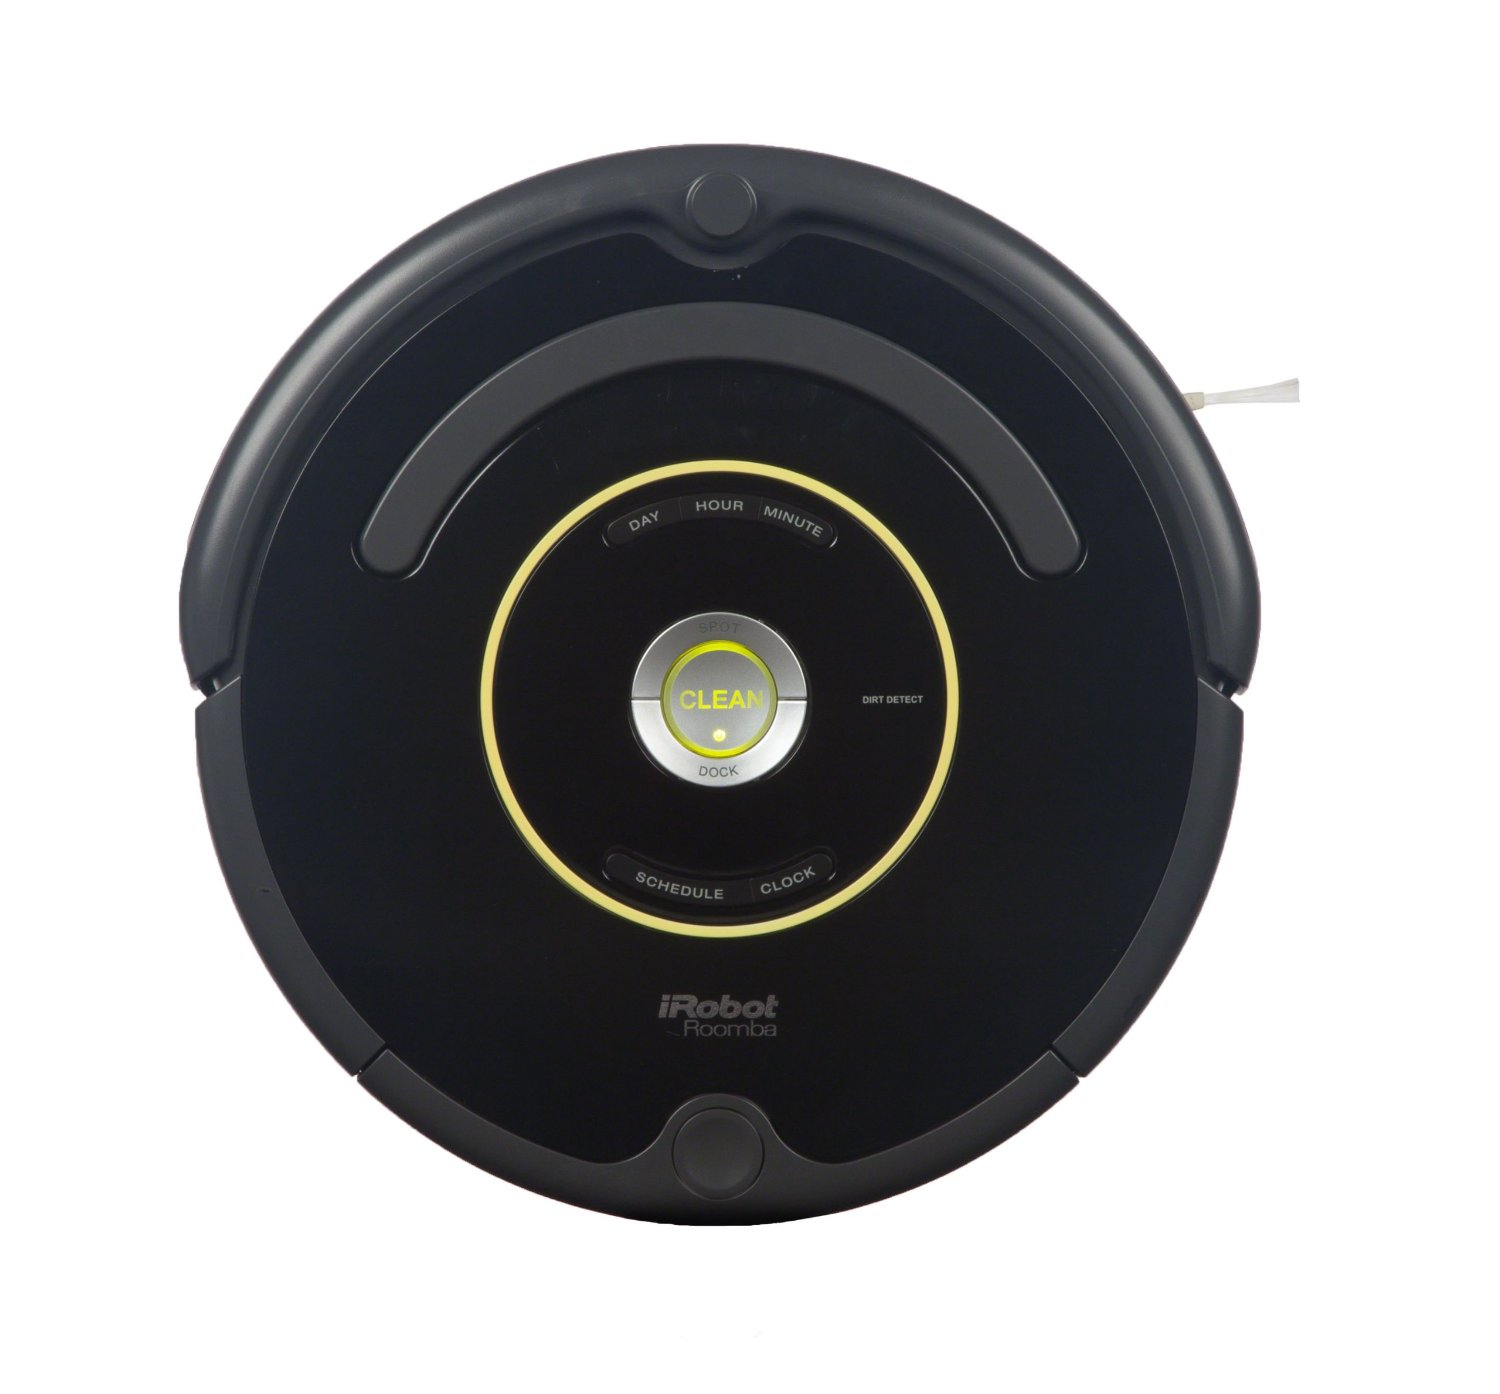 Best Robot Vacuums - What is the best robot floor cleaner